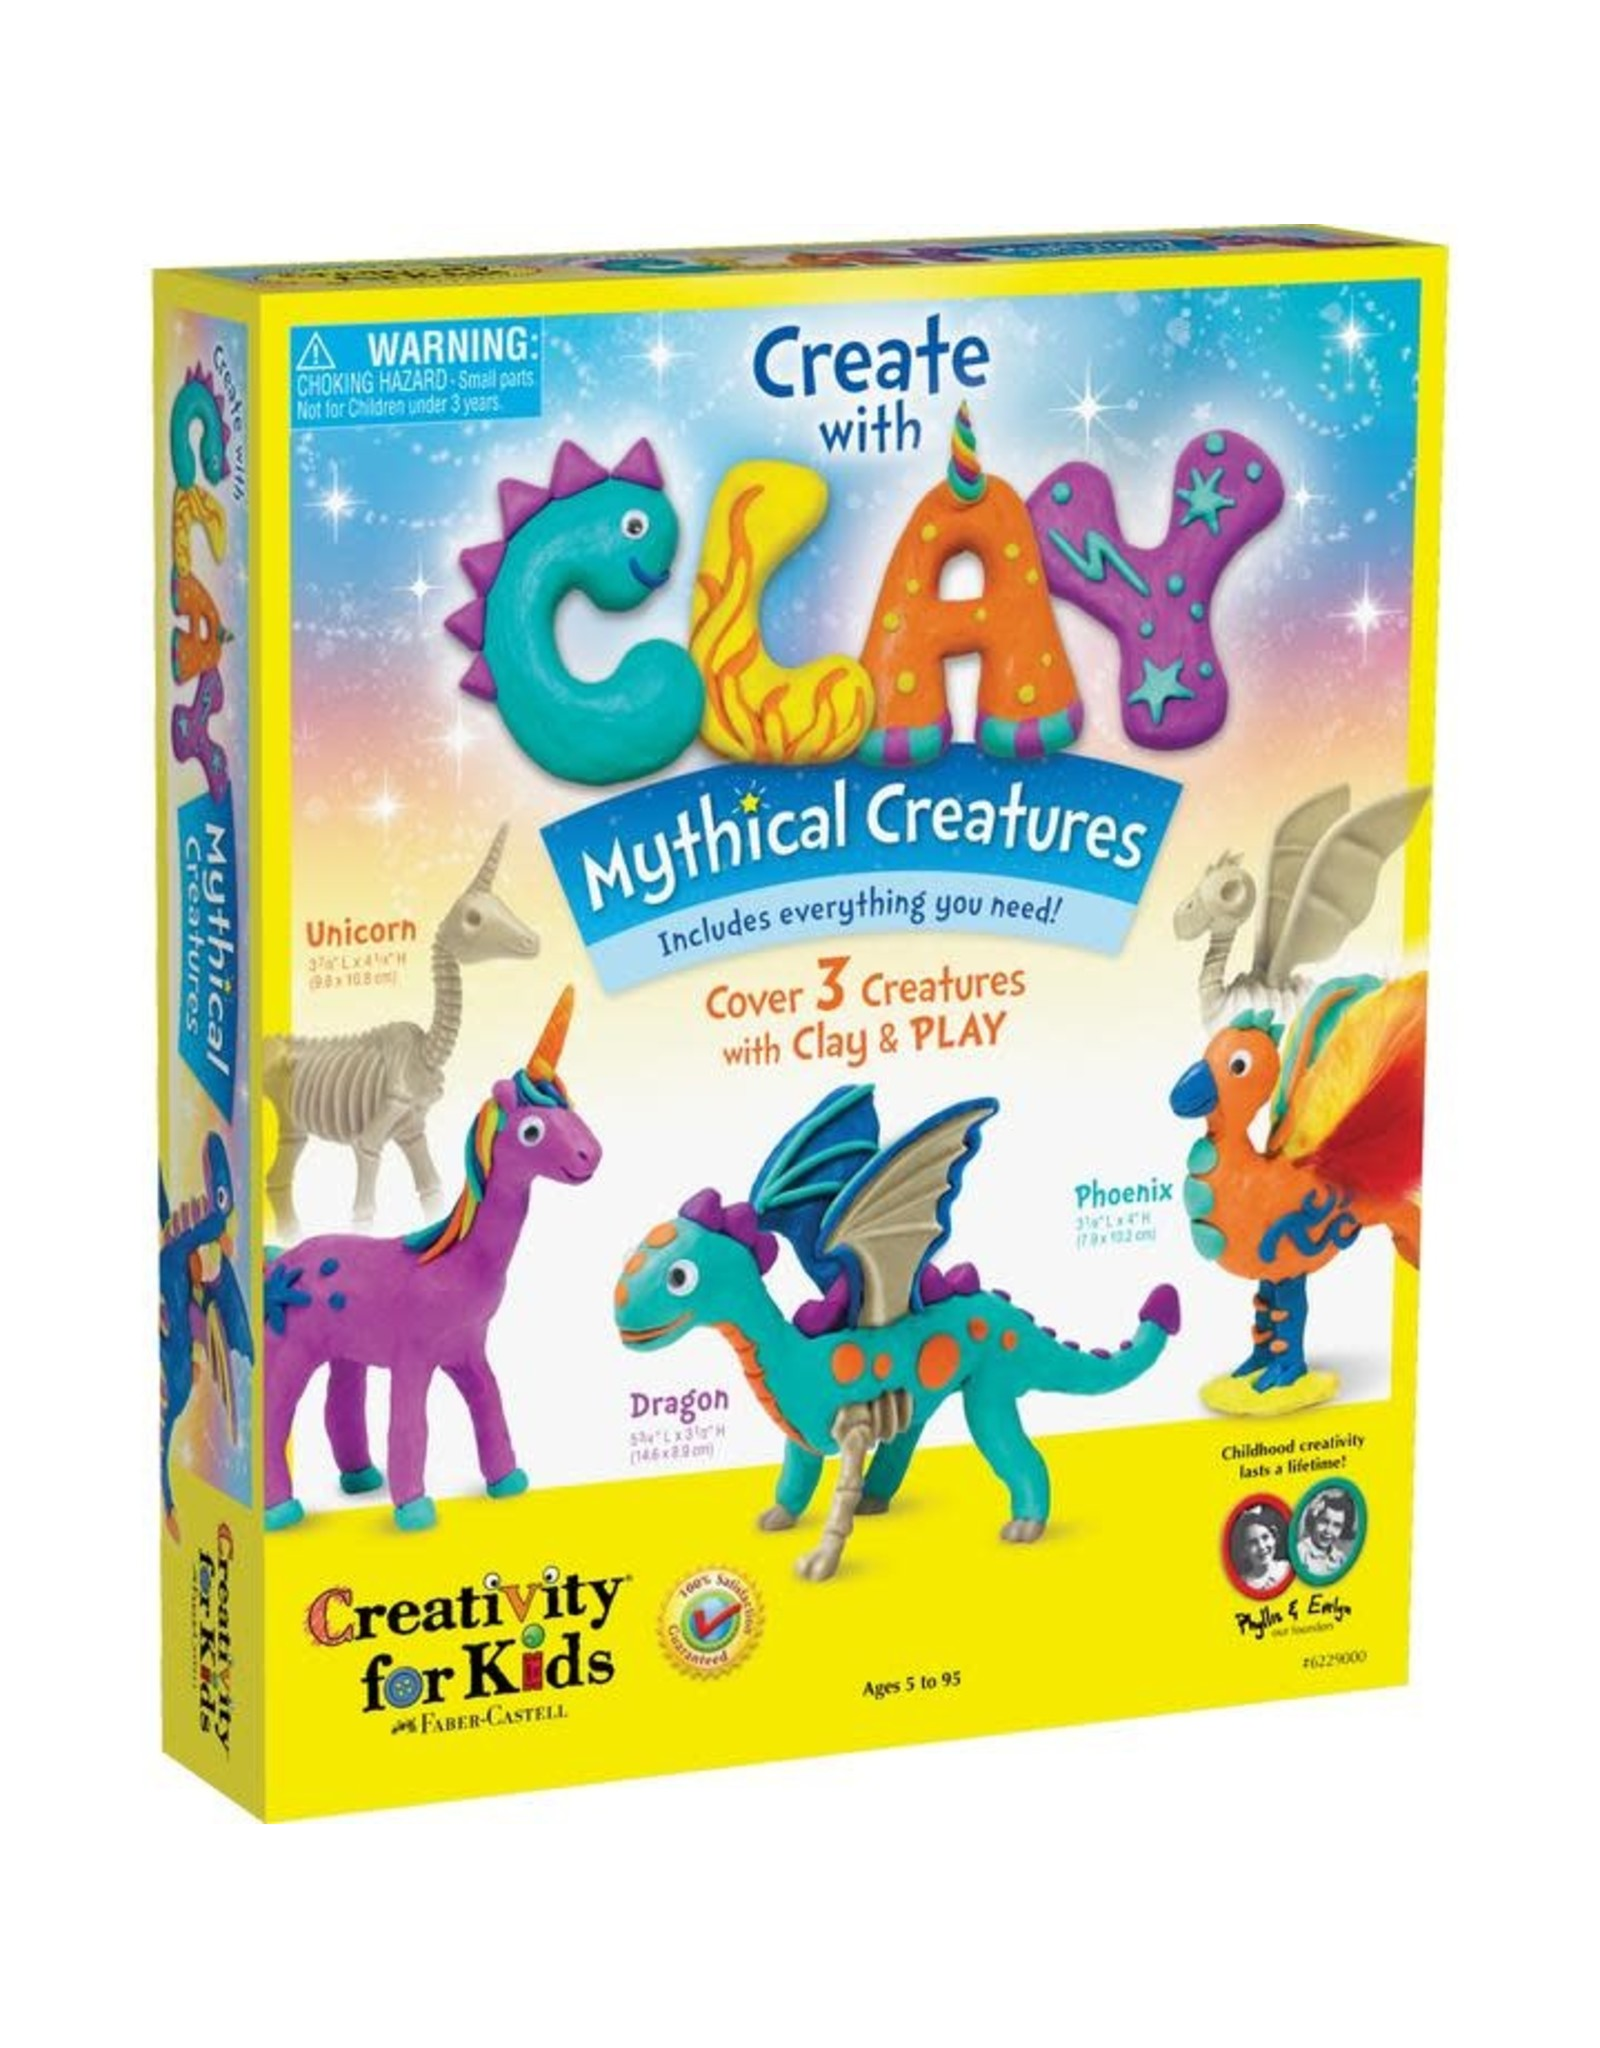 Creativity For Kids Create with Clay, Mythical Creatures